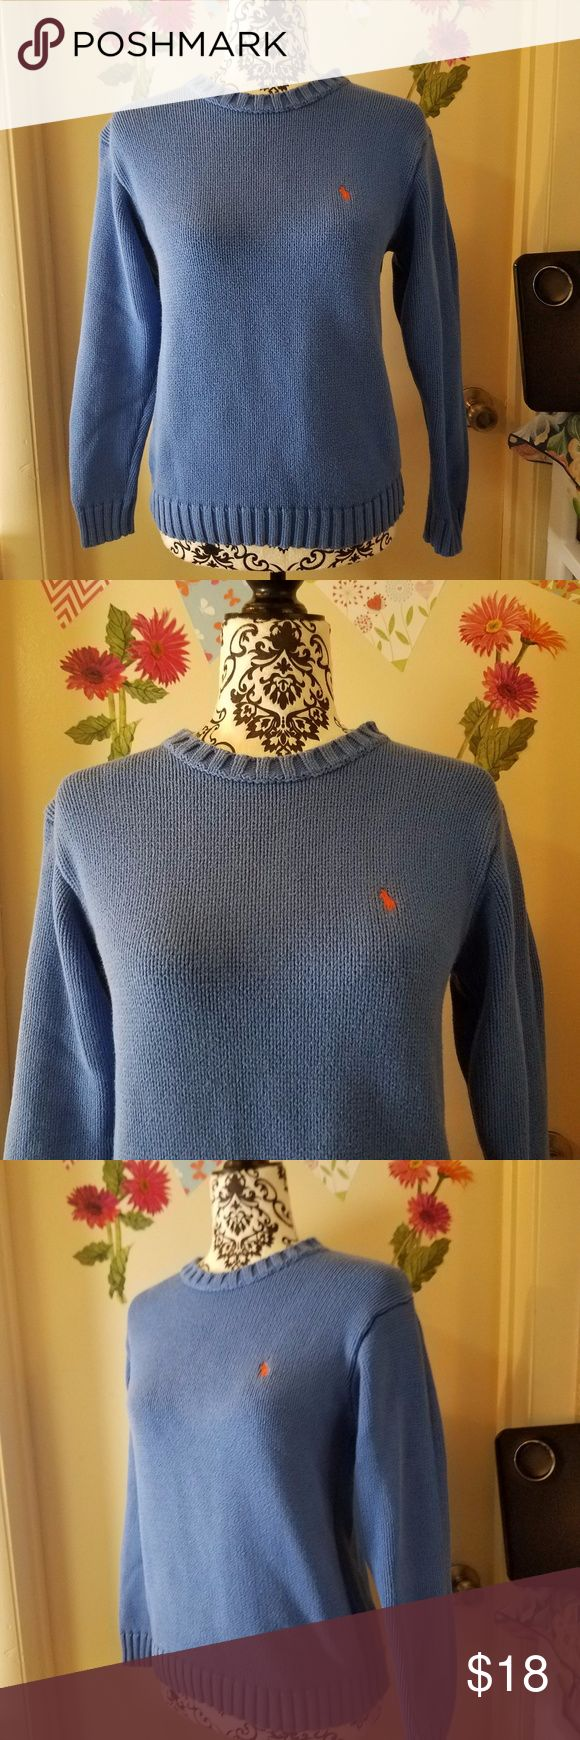 "SALE Polo by RALPH LAUREN Knit Pullover Sweater L Polo by RALPH LAUREN Knit Long Sleeve Pullover Sweater Junior Blue Cotton L Excellent Used  Condition   Beautiful knit long sleeve pullover, sweater  100% Cotton  Measurements:  Length: 22"" in Bust: 17.5"" in  Thank you for looking!  O-Too Polo by Ralph Lauren Shirts & Tops Sweaters"